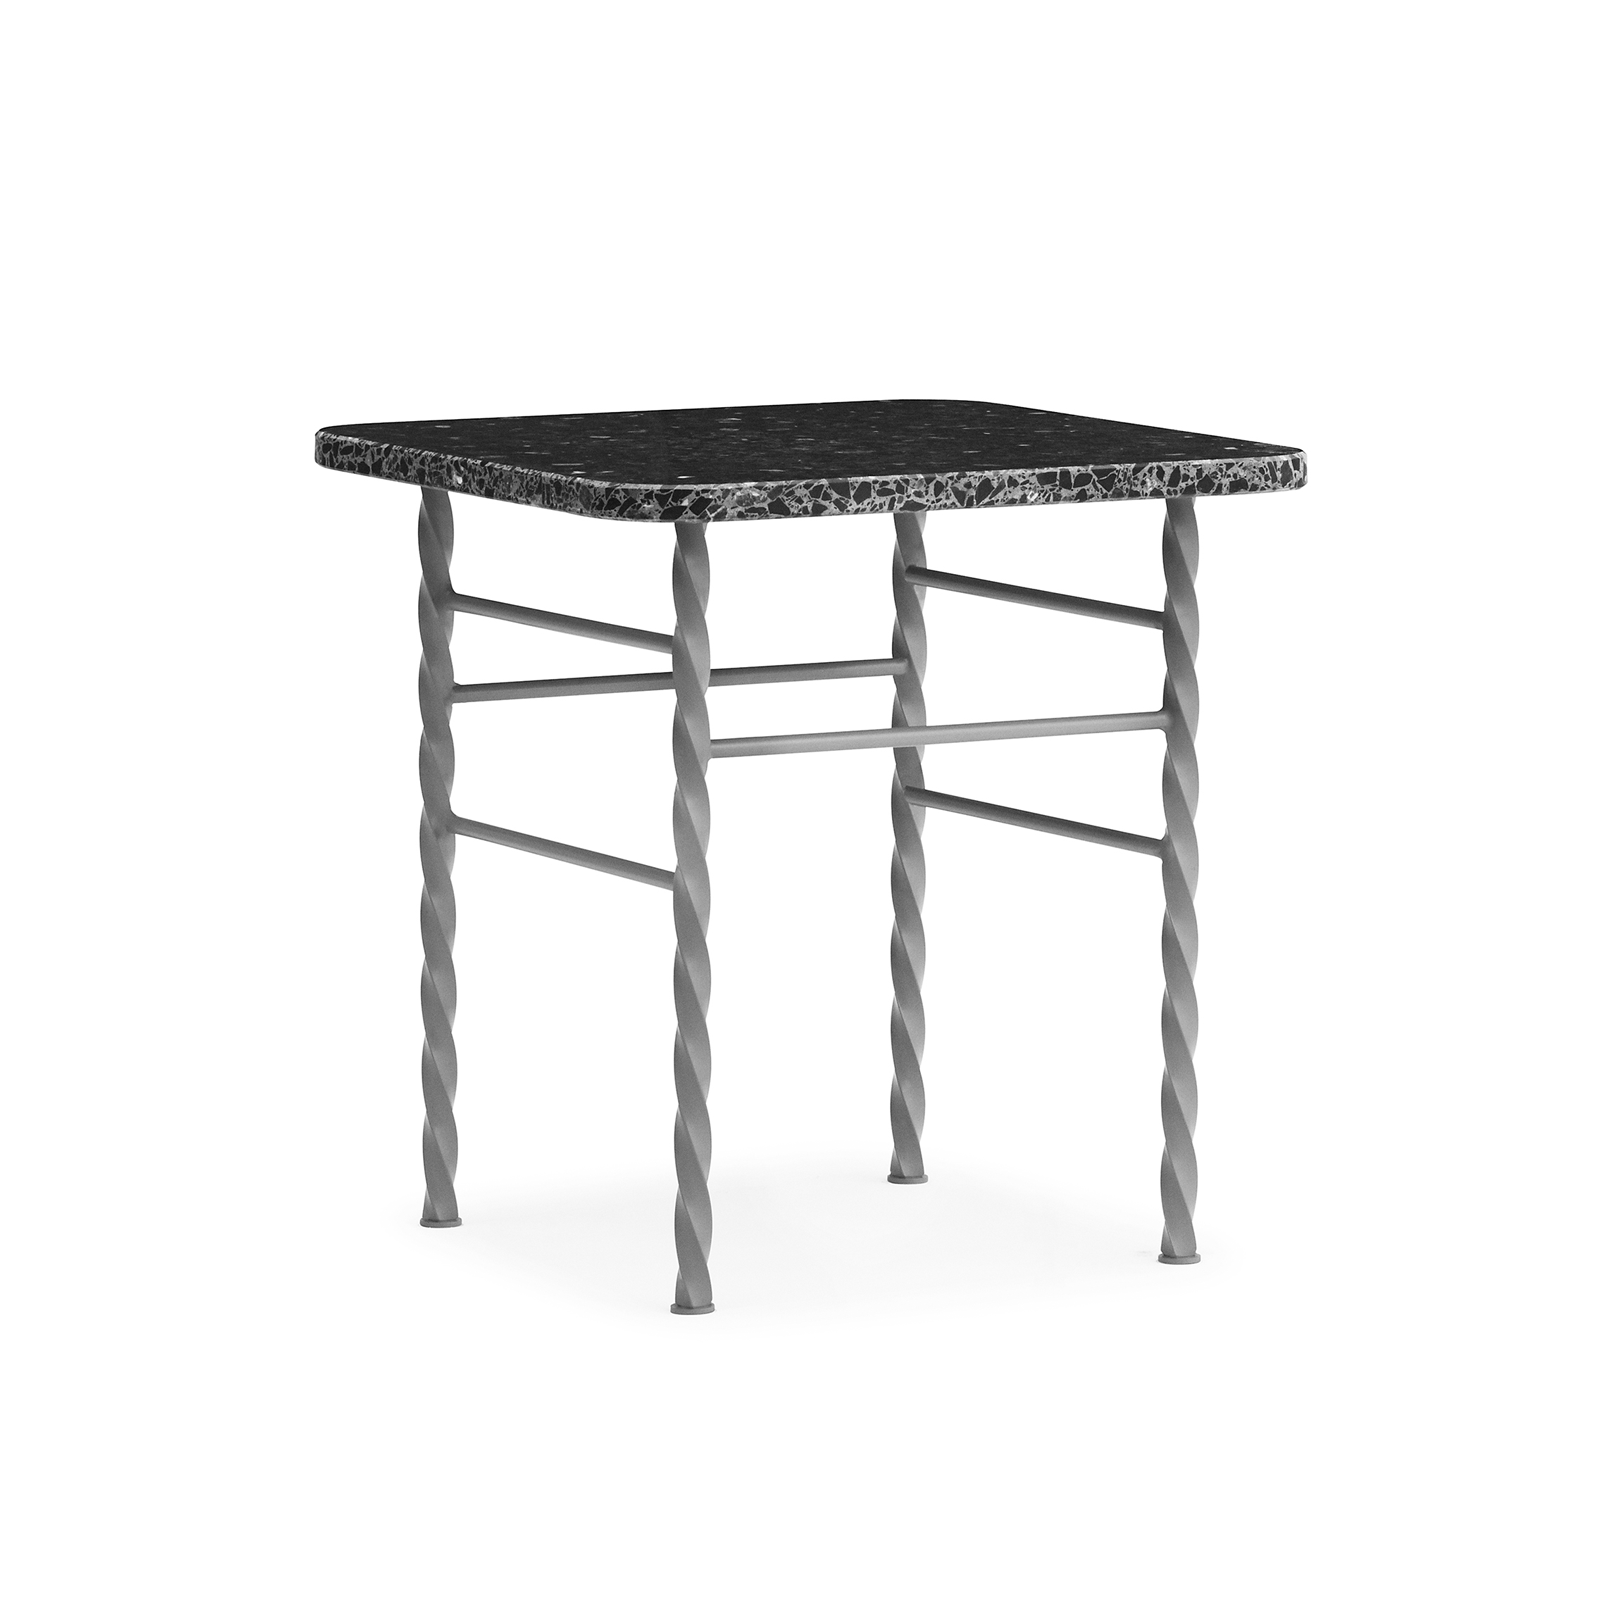 Normann Copenhagen Terra Table in Small 40x40cm 磨石子系列 方形 邊桌 小尺寸